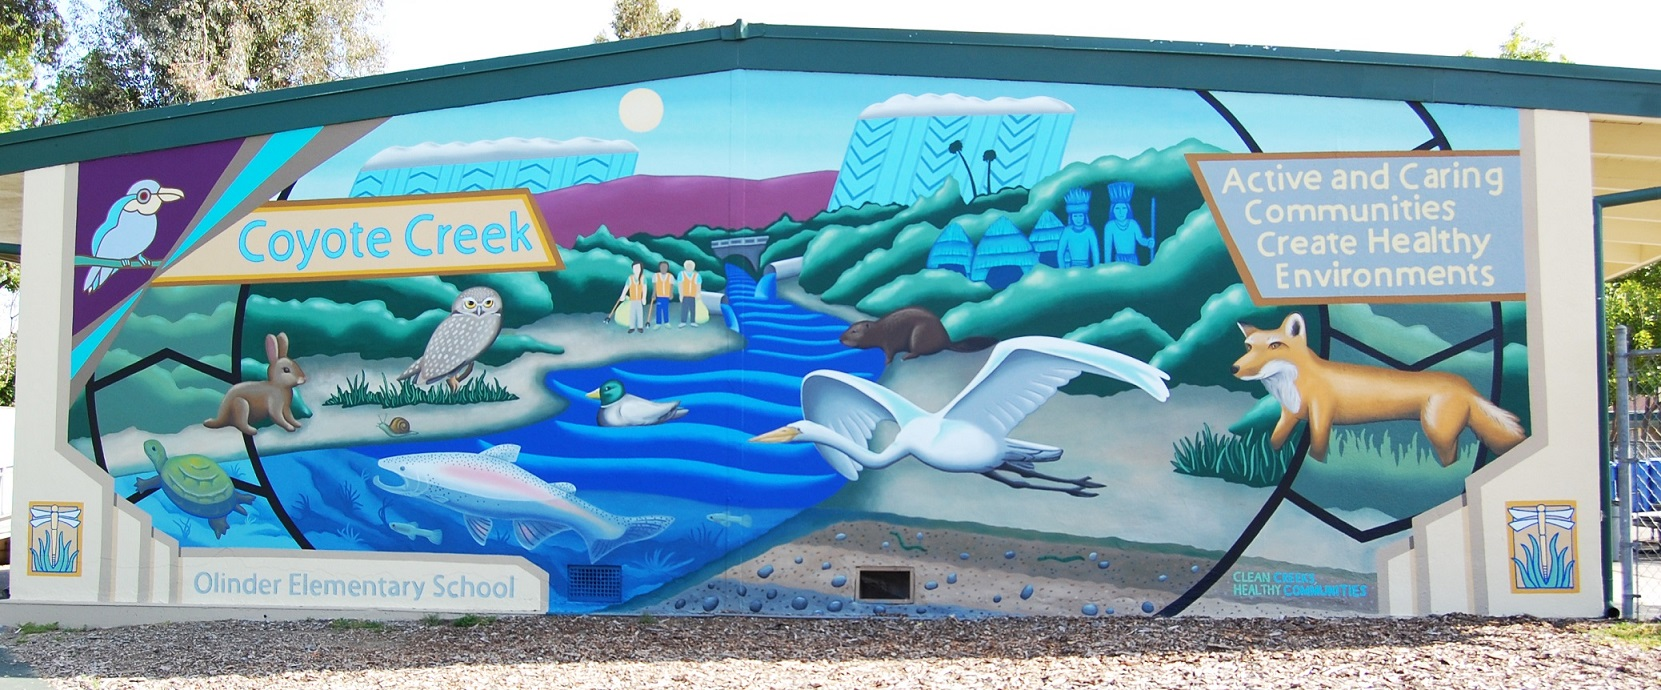 """Colorful mural on side of building depicts Coyote Creek and wildlife with statement """"Active and Caring Communities Create Healthy Environments."""""""